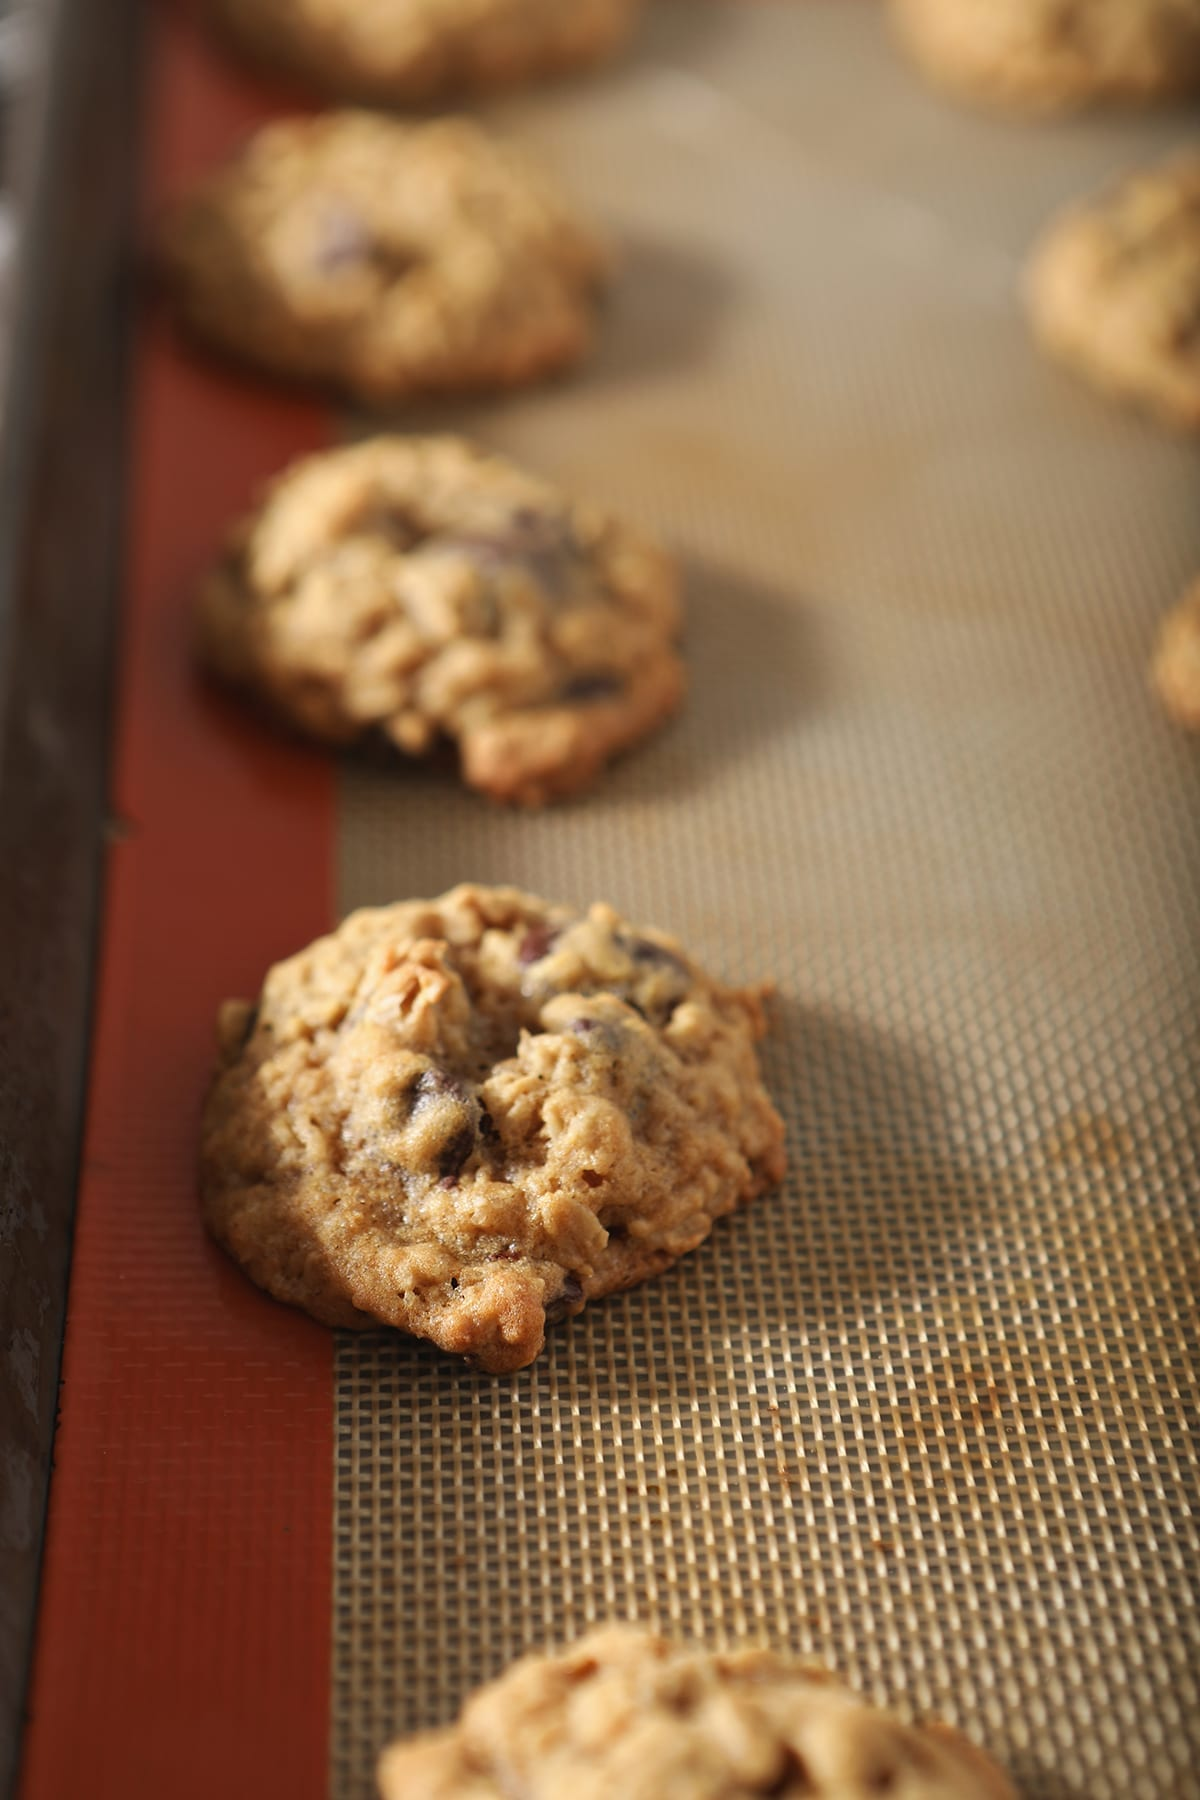 Cookies on a lined baking sheet after baking